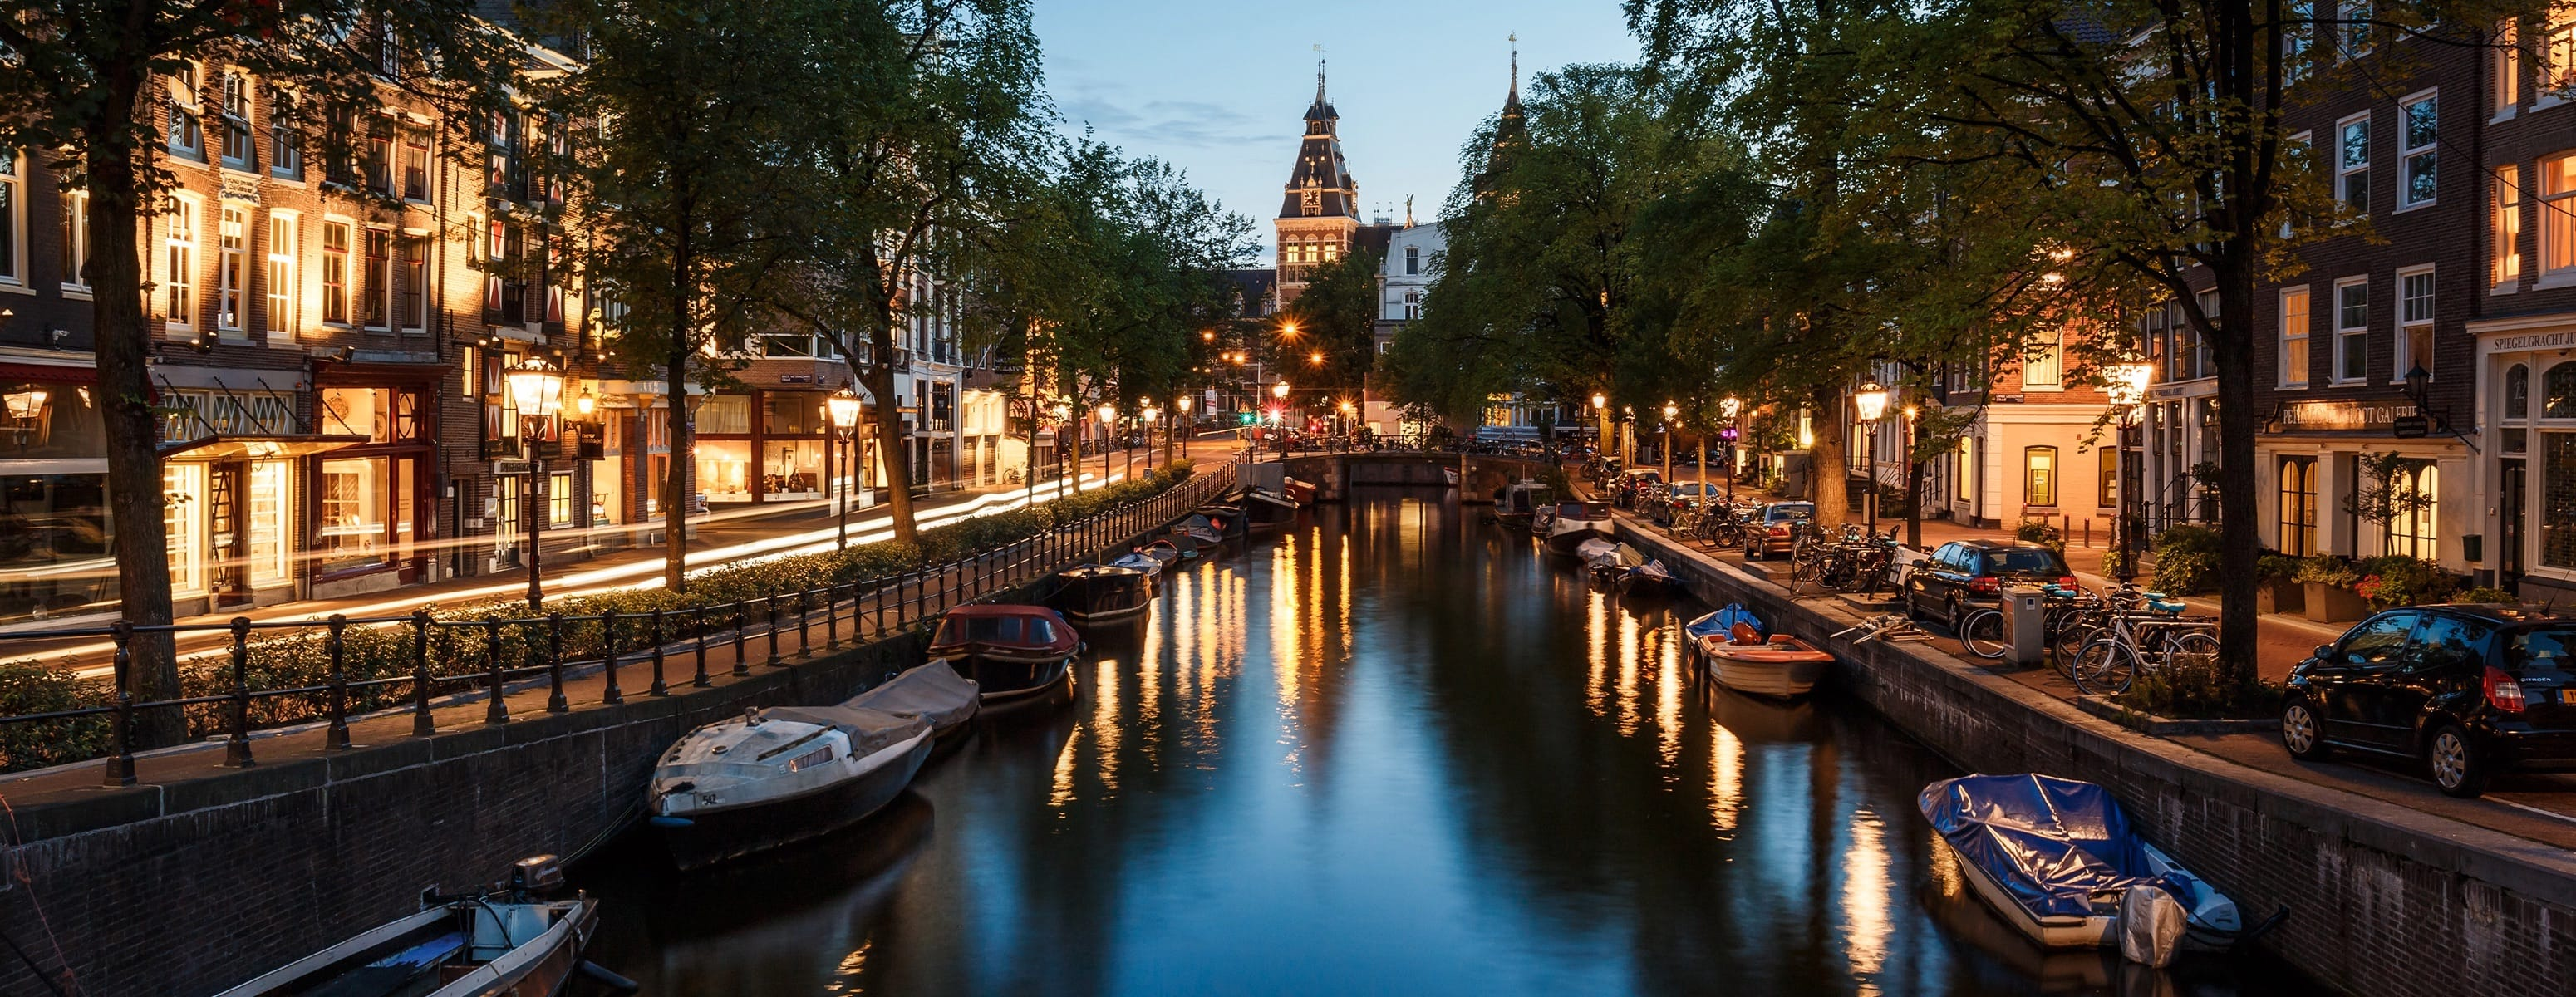 Amsterdam travel guide for first-time visitors - Best Places to Visit in Europe - planningforeurope.com (2)